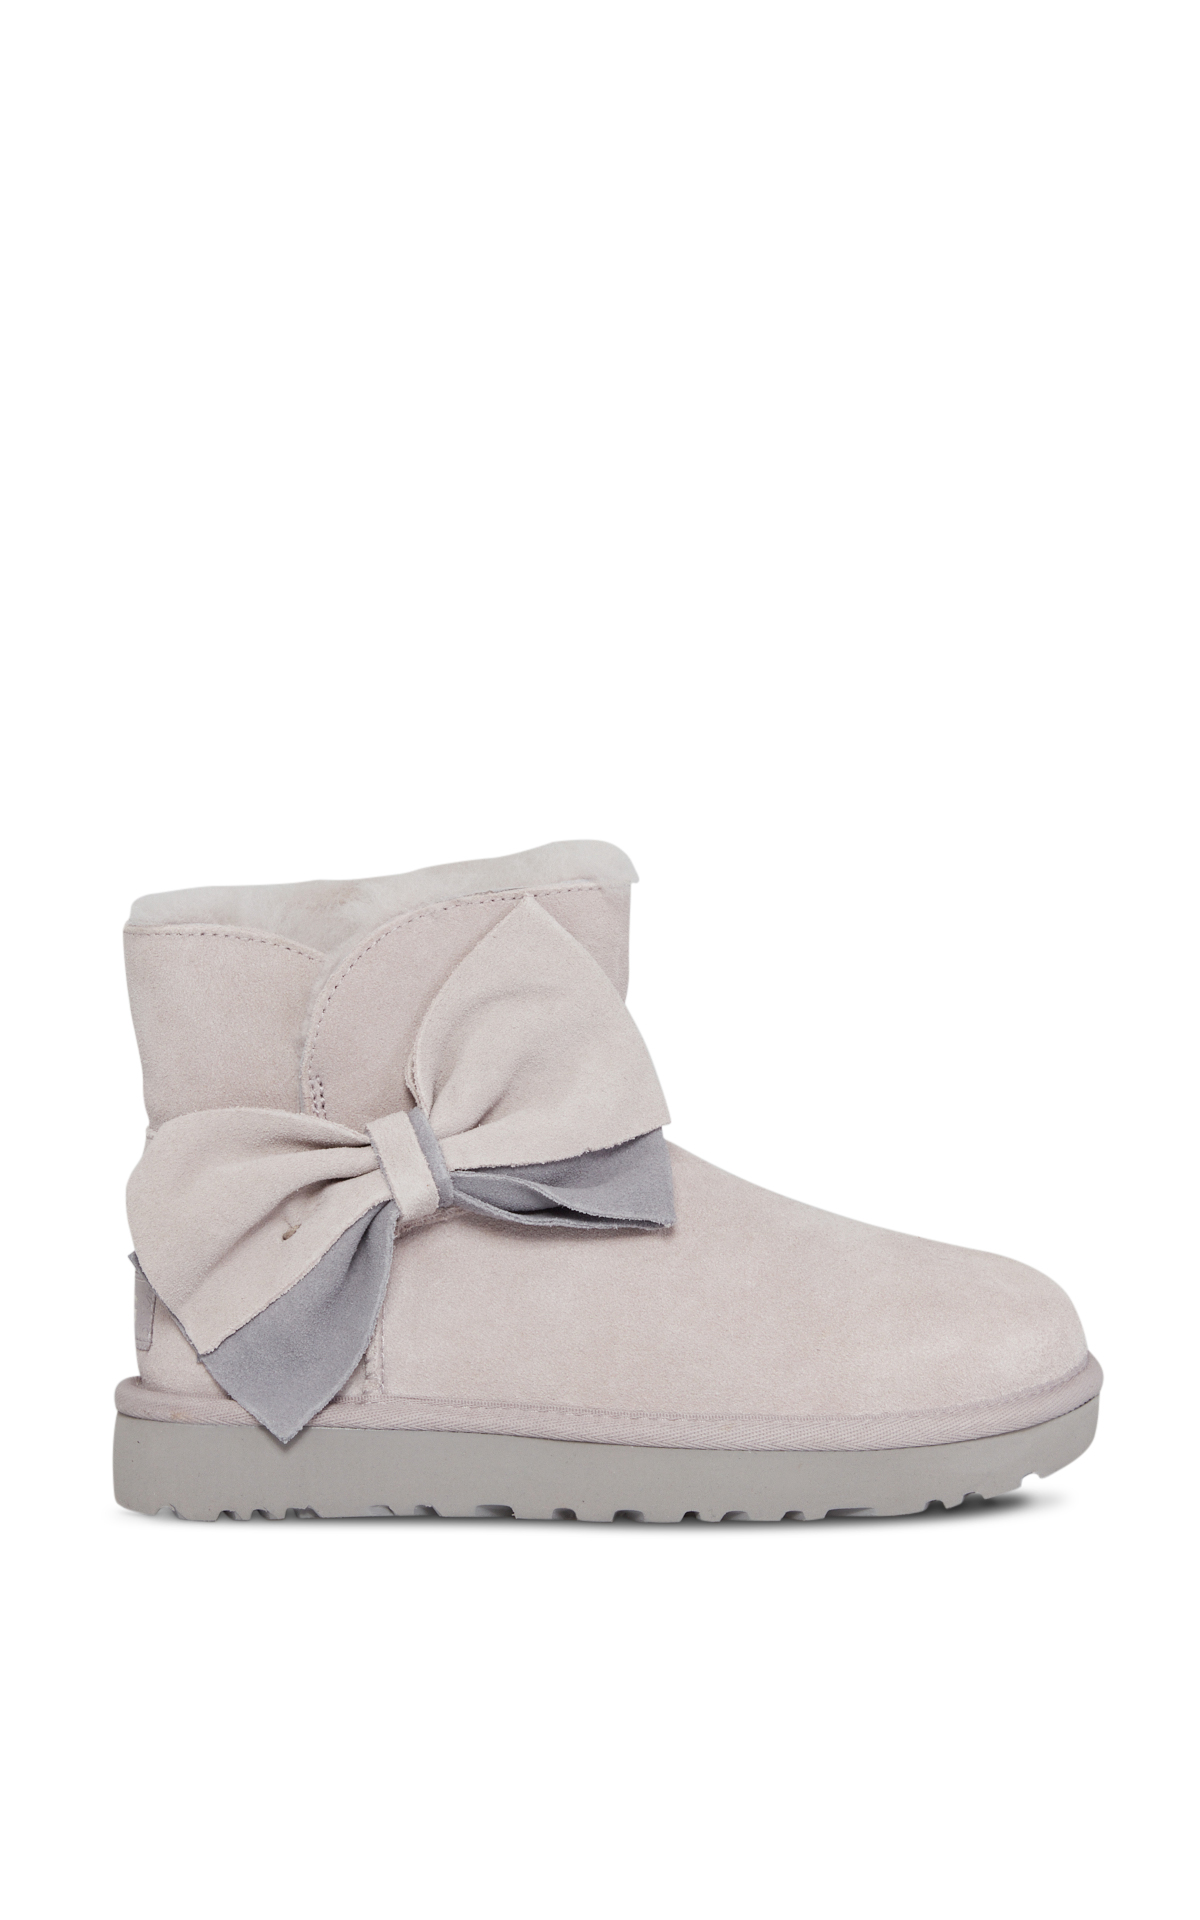 Grey classic mini boots with two-tone bow*